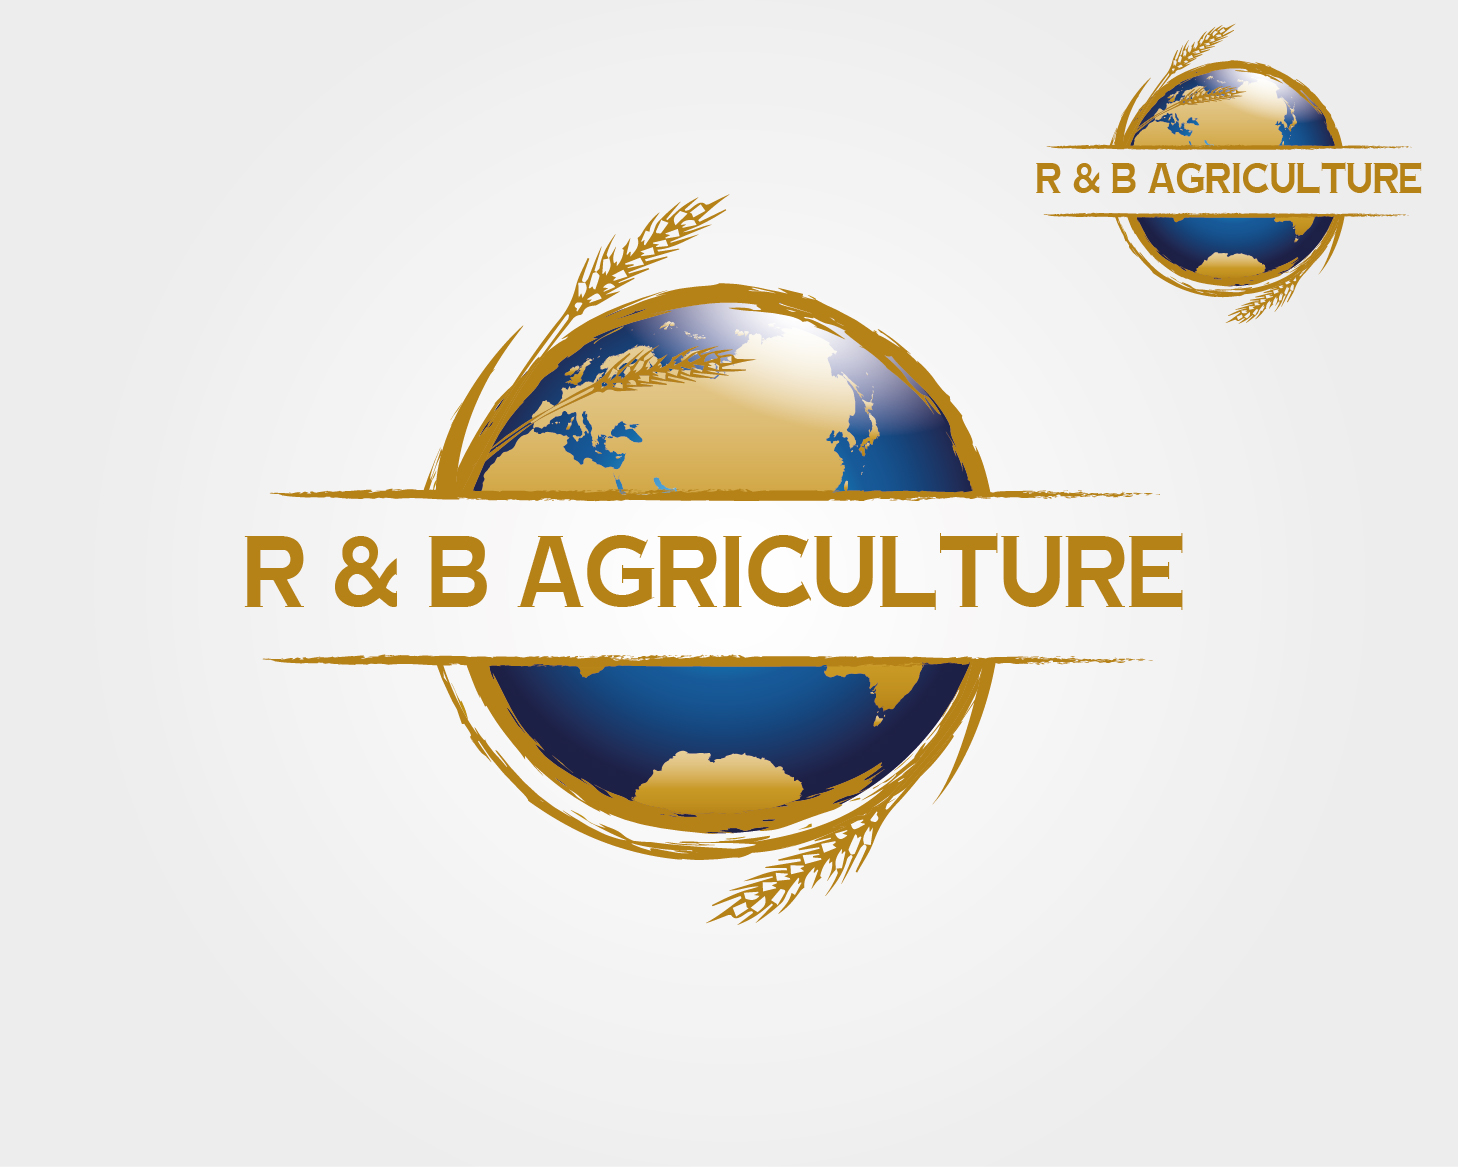 Logo Design by VENTSISLAV KOVACHEV - Entry No. 67 in the Logo Design Contest Captivating Logo Design for R & B Agriculture.